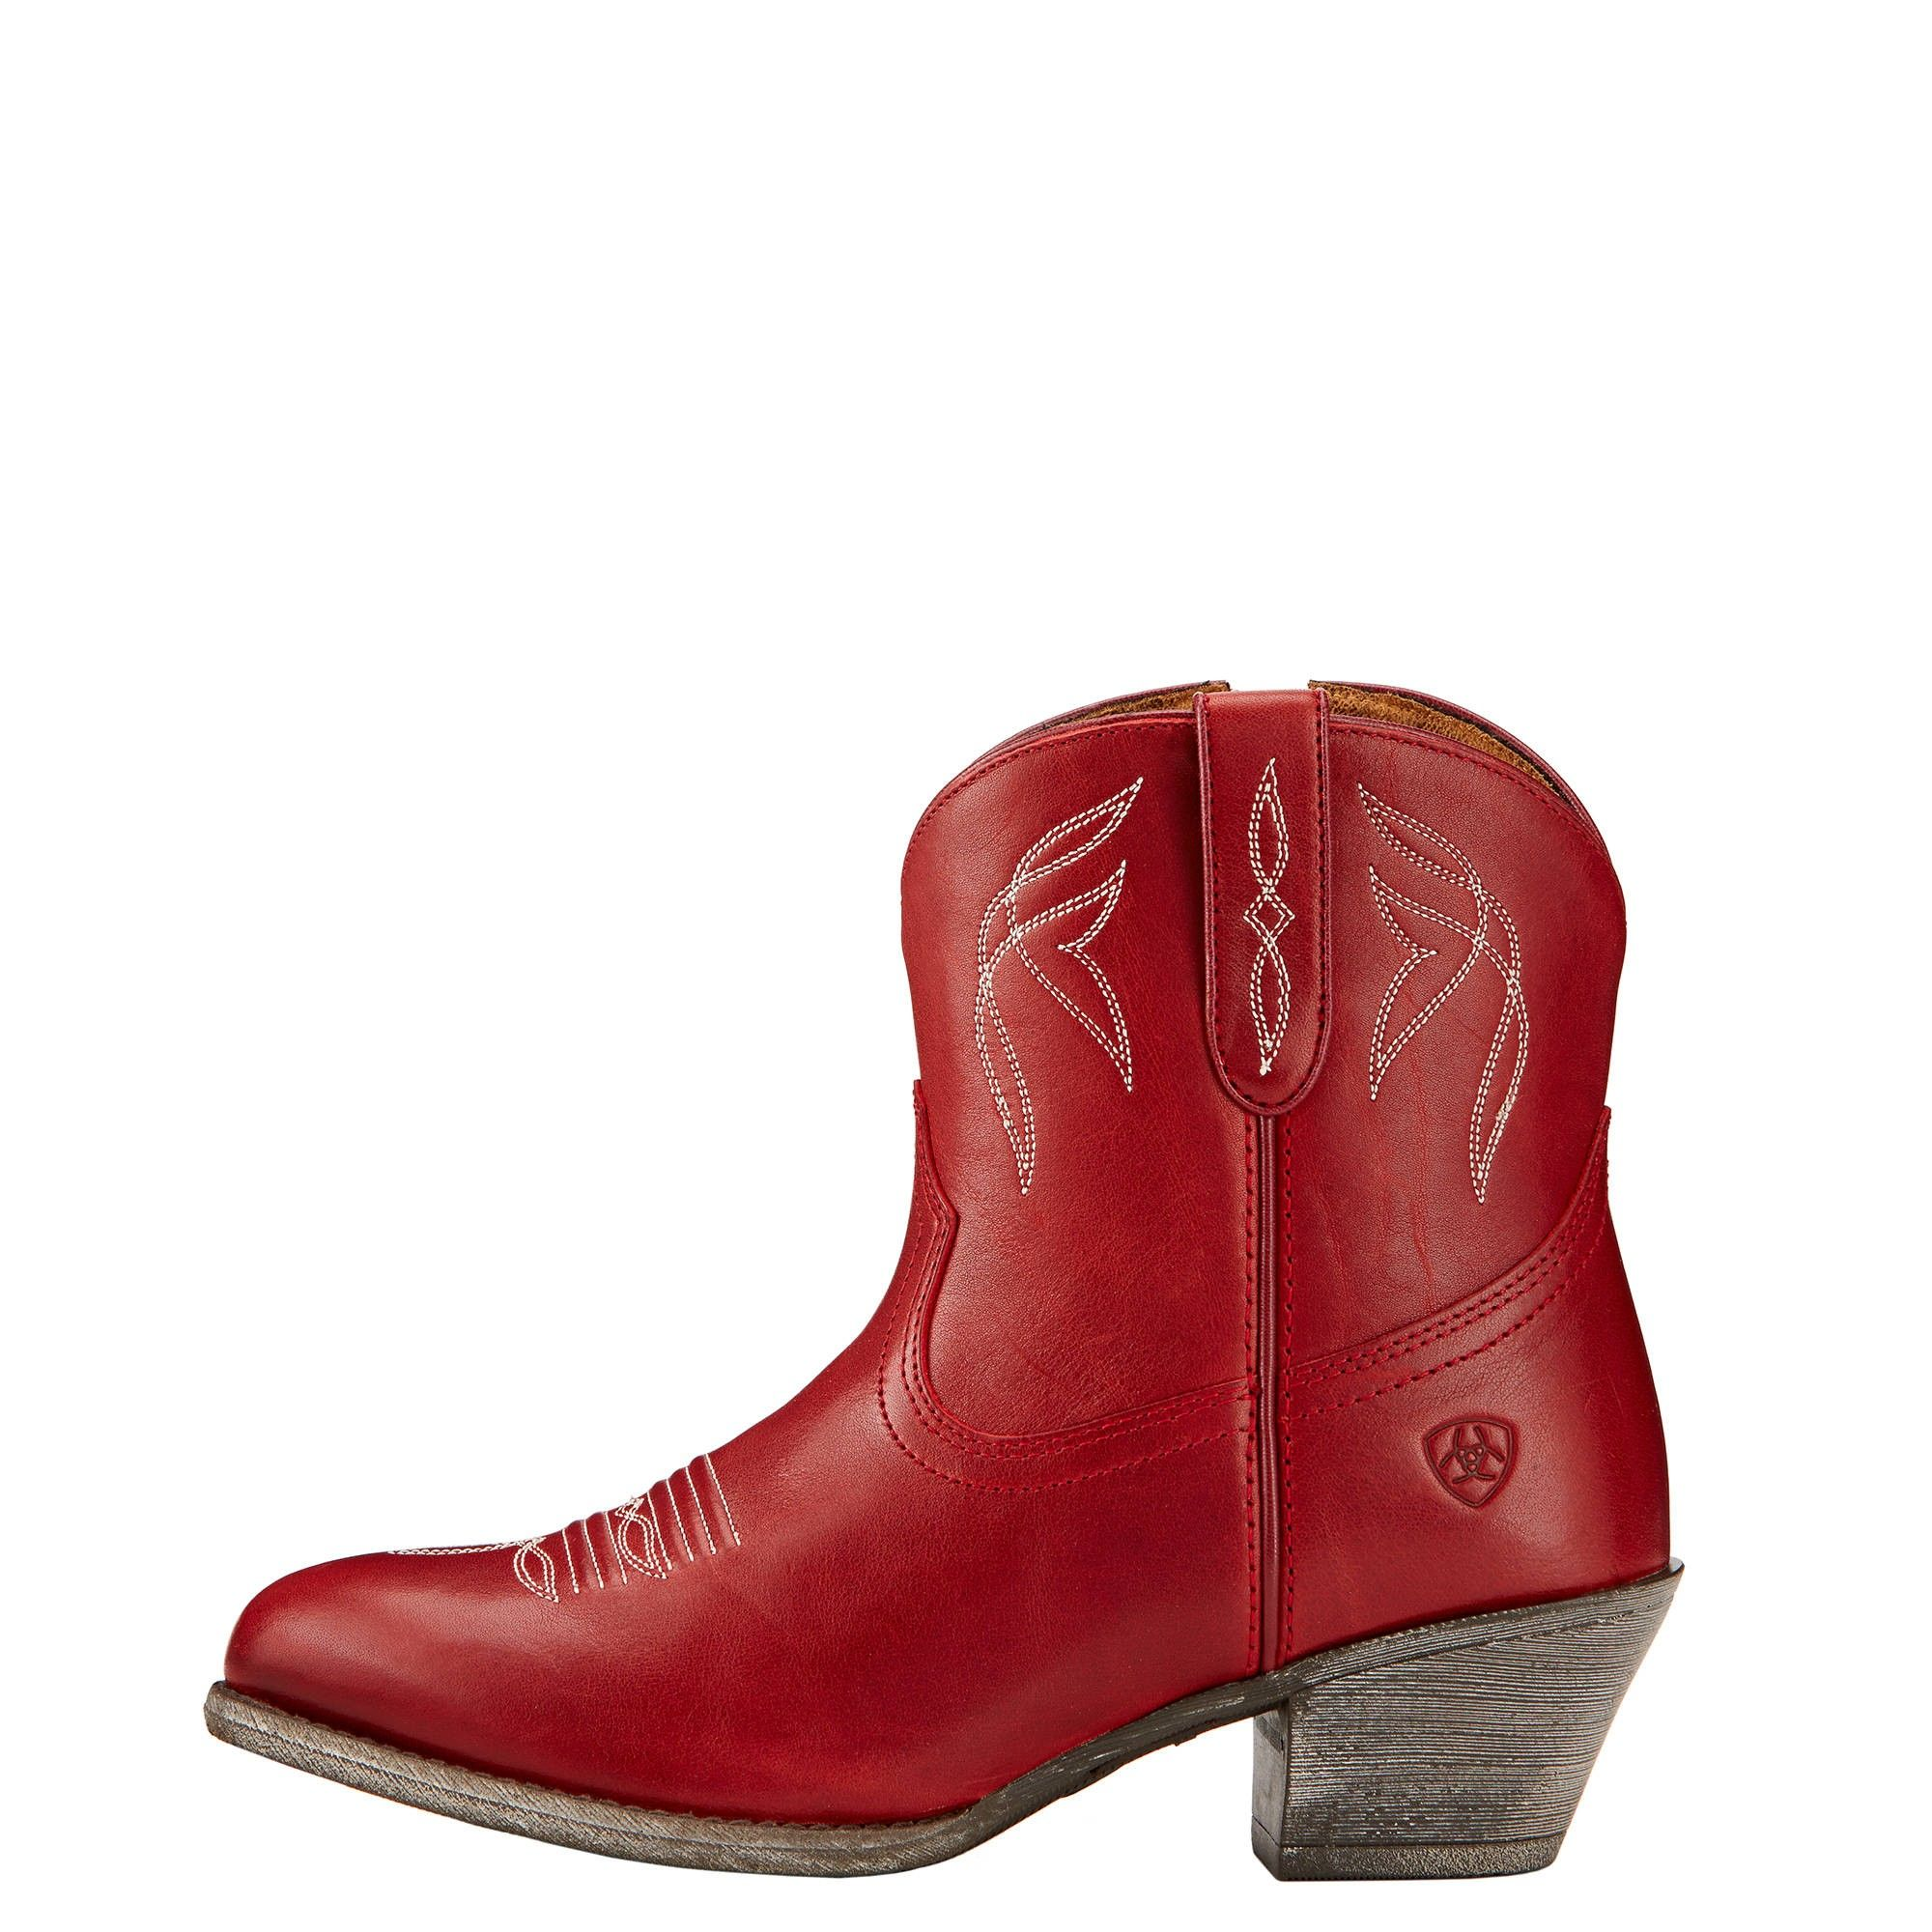 Ariat Boots Darlin Rosy Red #10017324